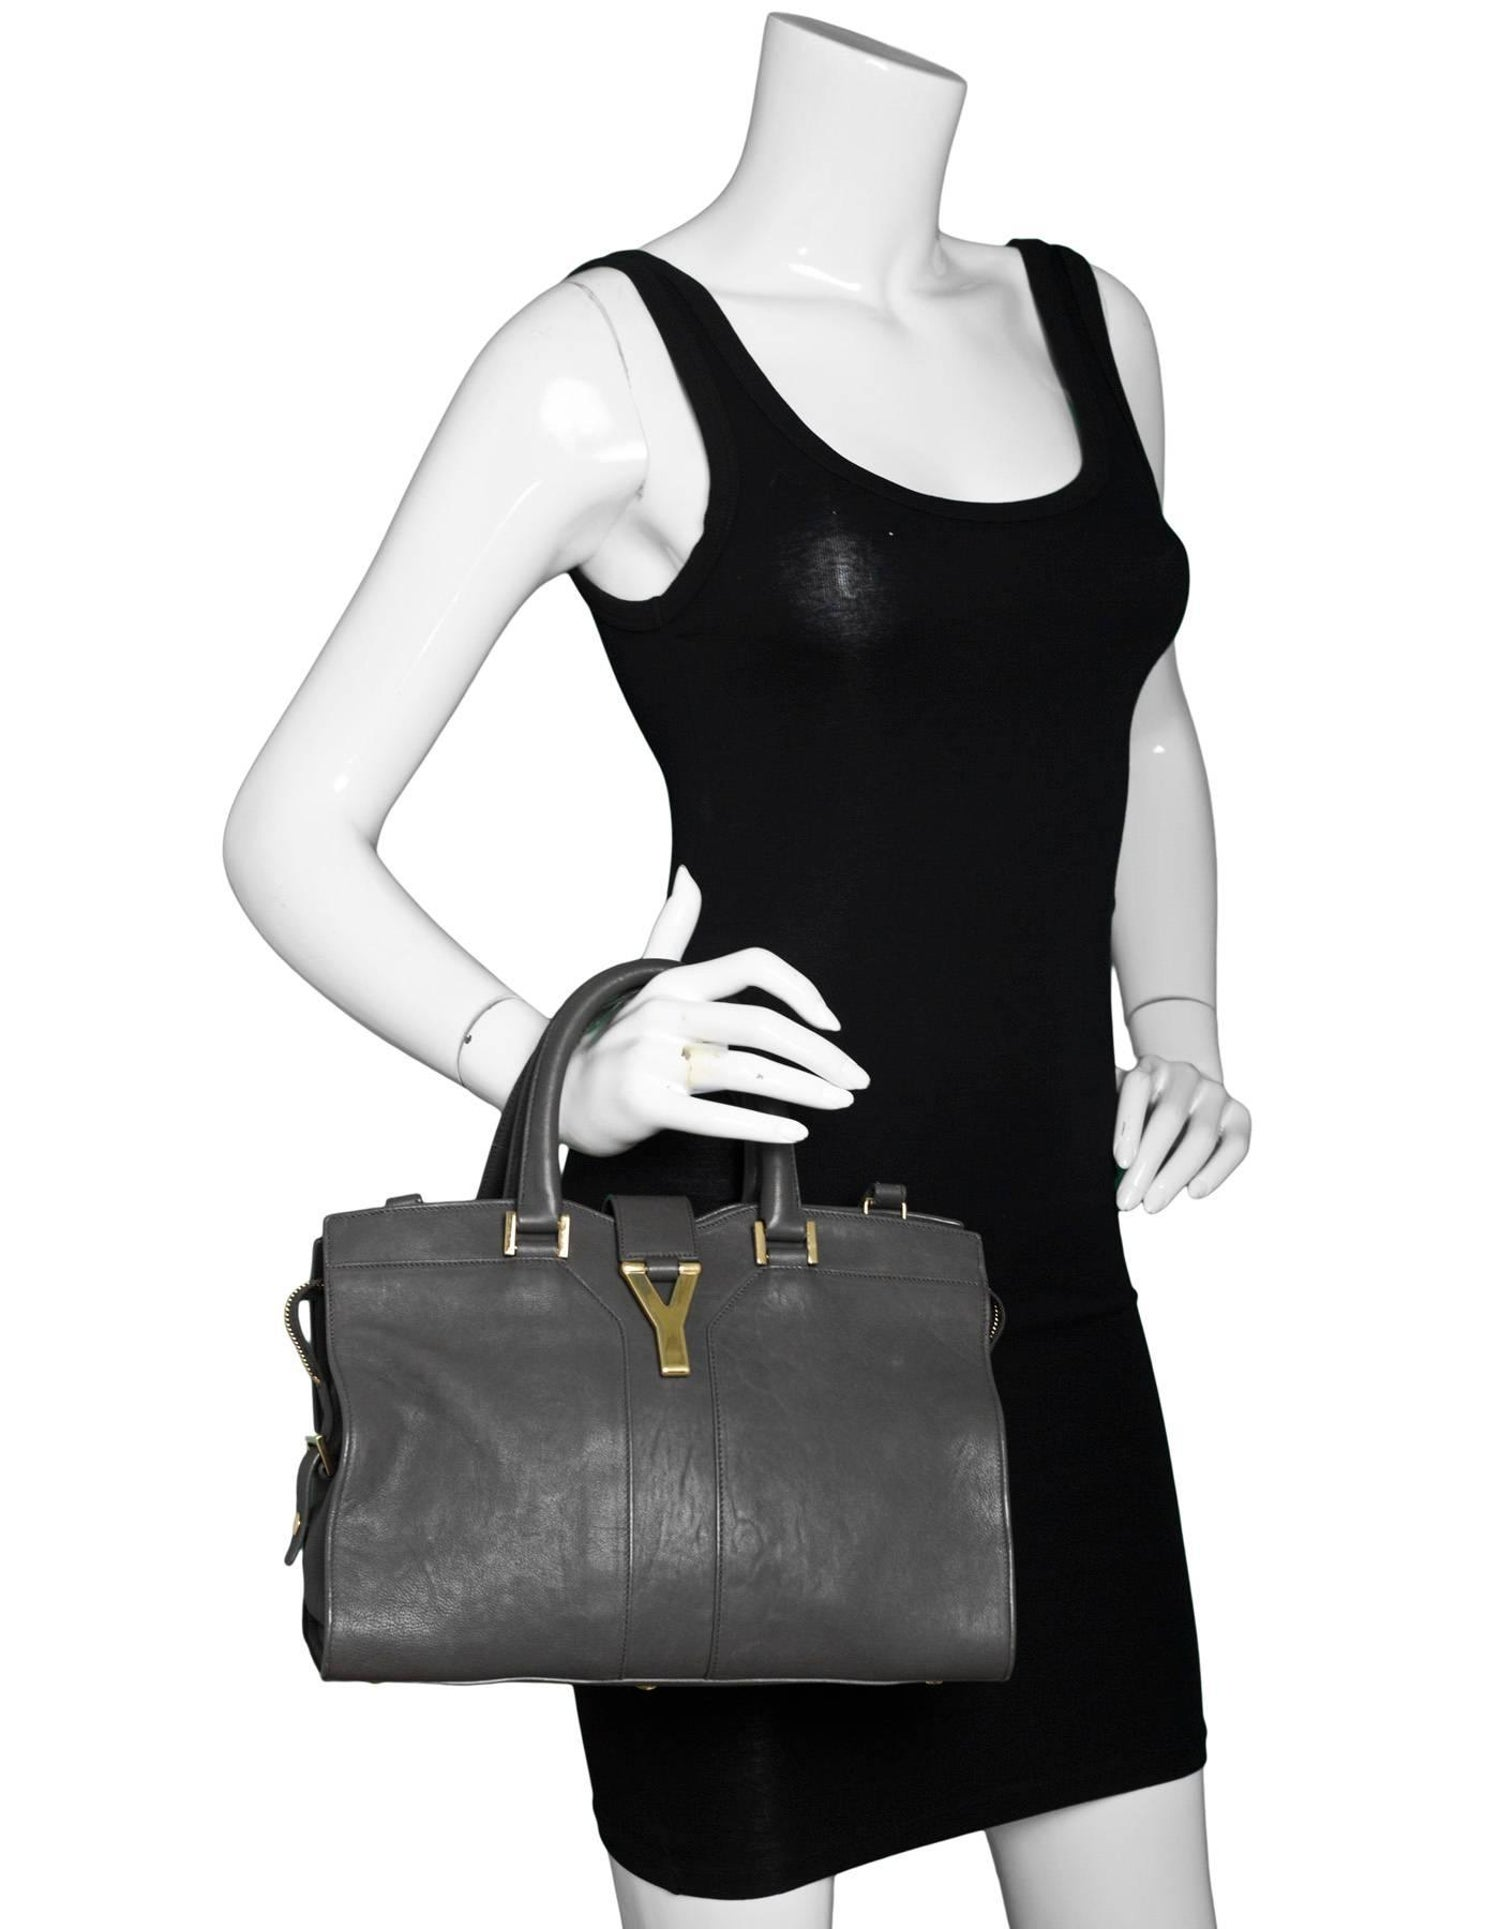 b1220d7489904 YSL Yves Saint Laurent Grey Leather Small Cabas ChYc Satchel Bag For Sale  at 1stdibs